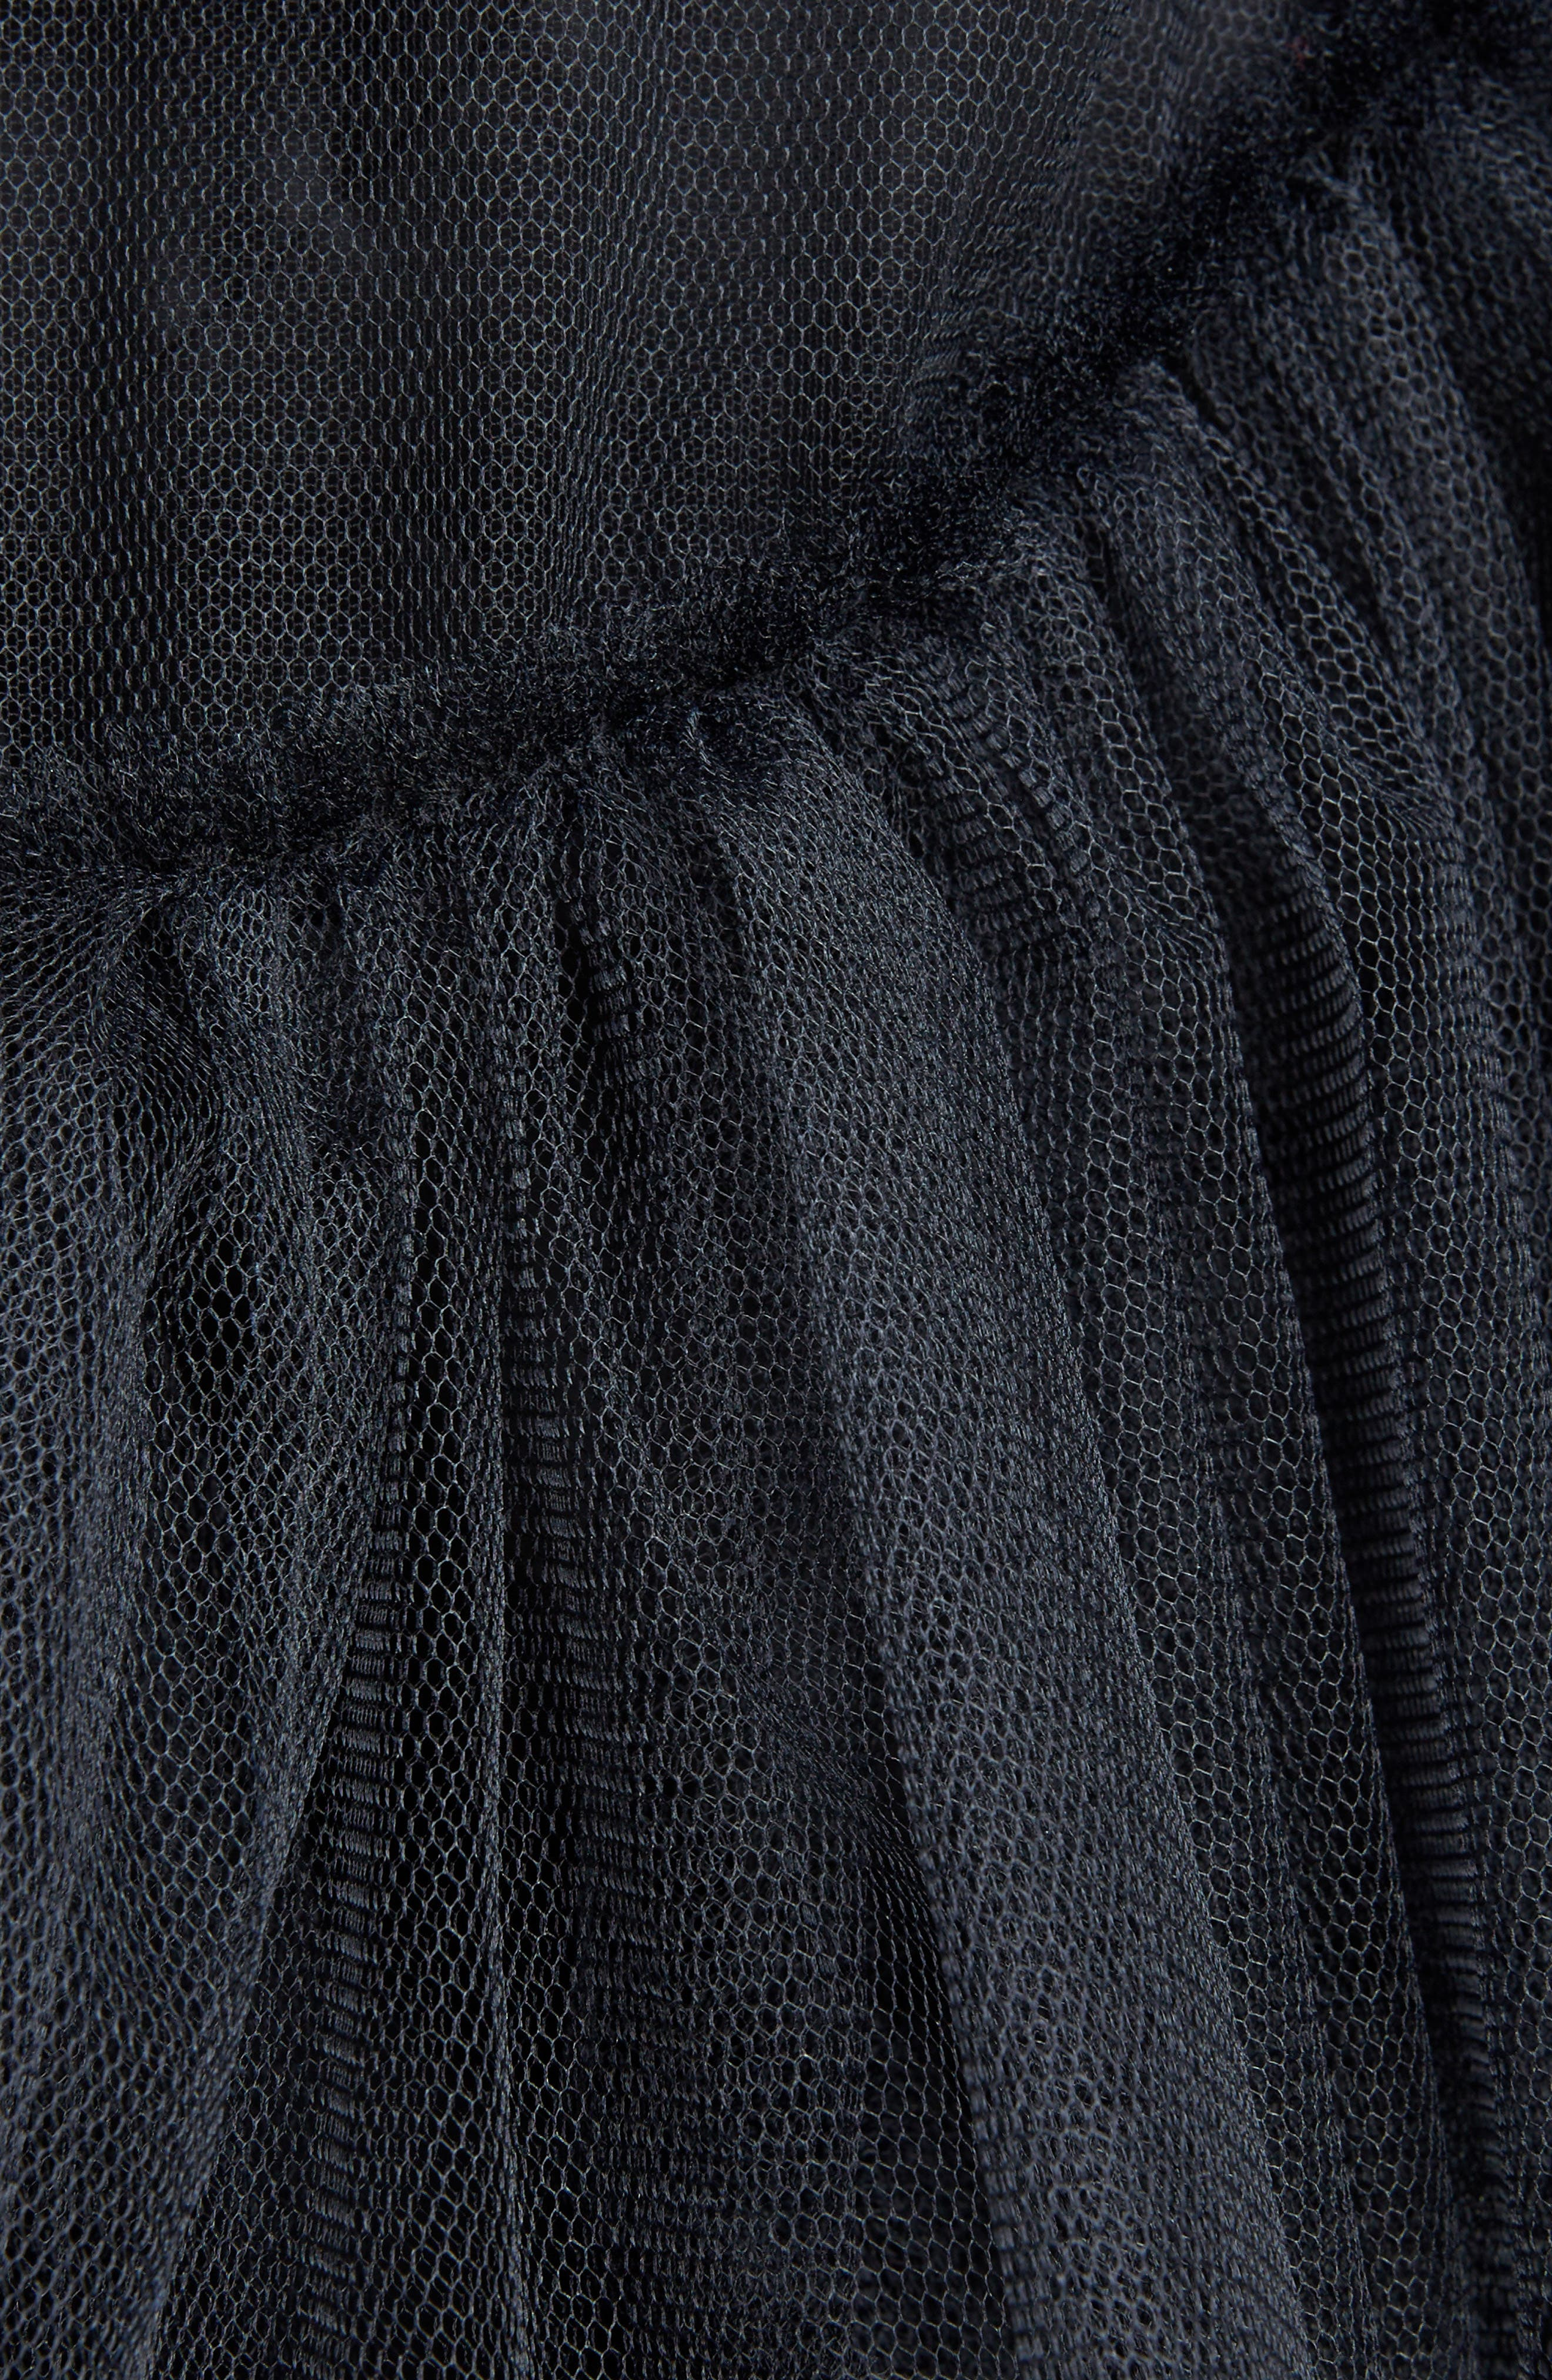 Turbo Tiered Tulle Dress,                             Alternate thumbnail 5, color,                             001